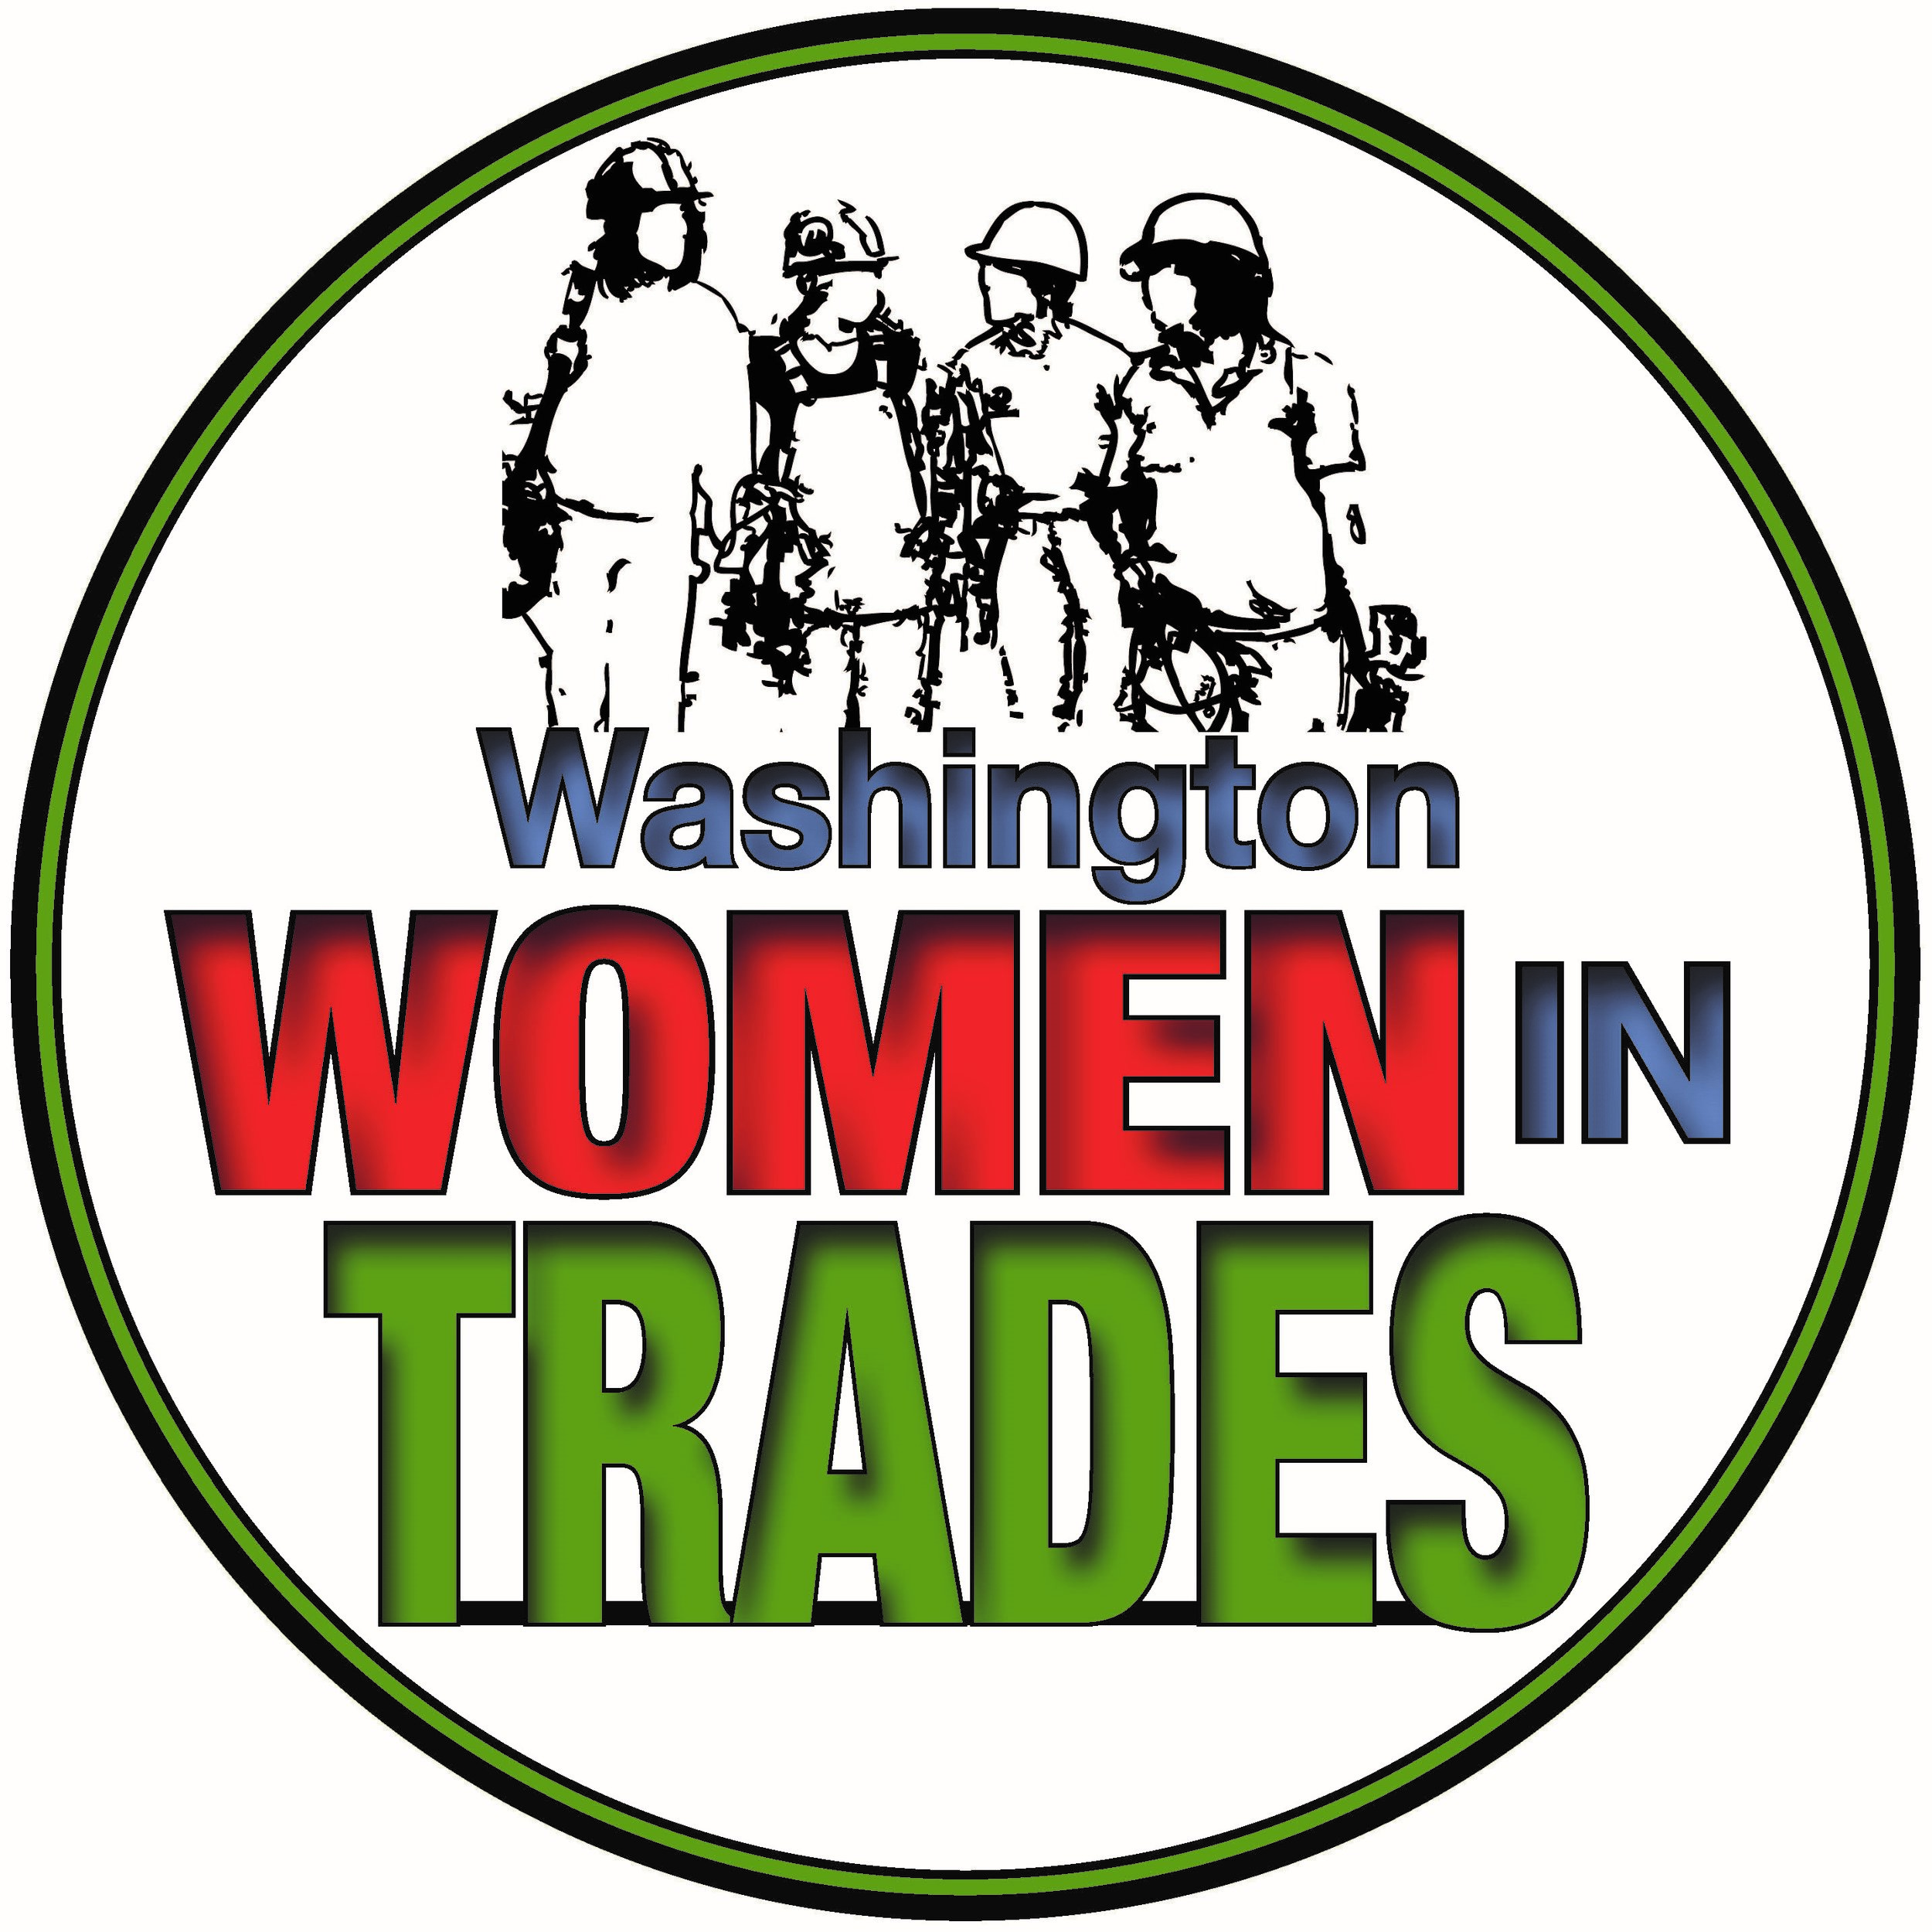 Washington Women in Trades - Standing monthly meeting. The third Thursday of the month, 6 pm. At Alaskan Copper, 2958 6th Ave. S. Seattle